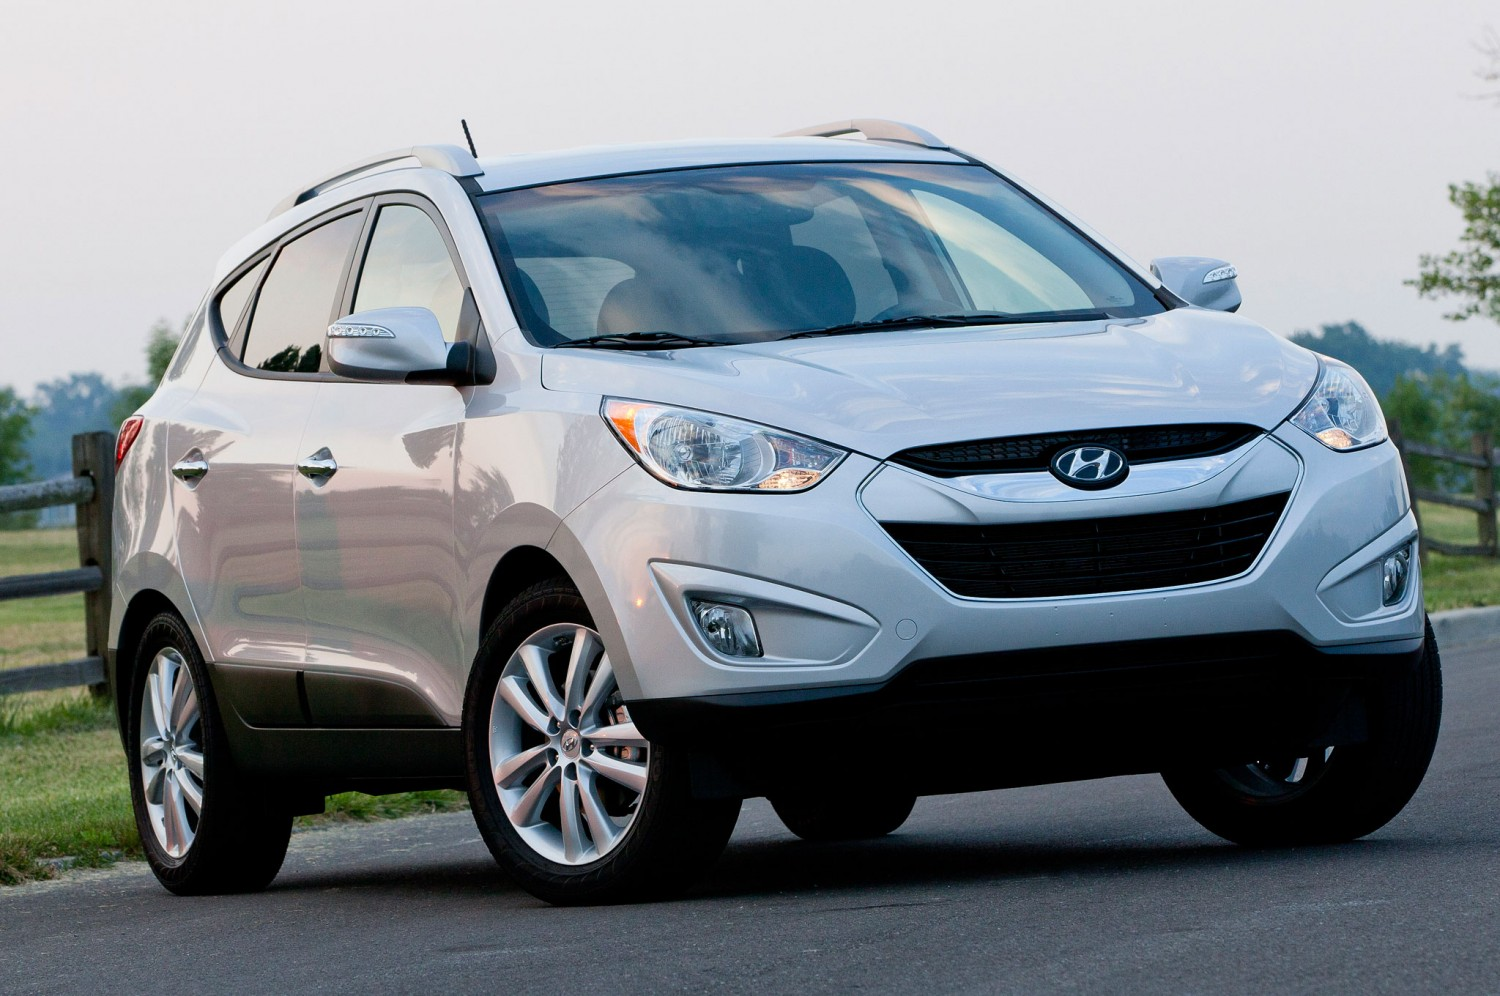 2014 hyundai tucson information and photos momentcar. Black Bedroom Furniture Sets. Home Design Ideas